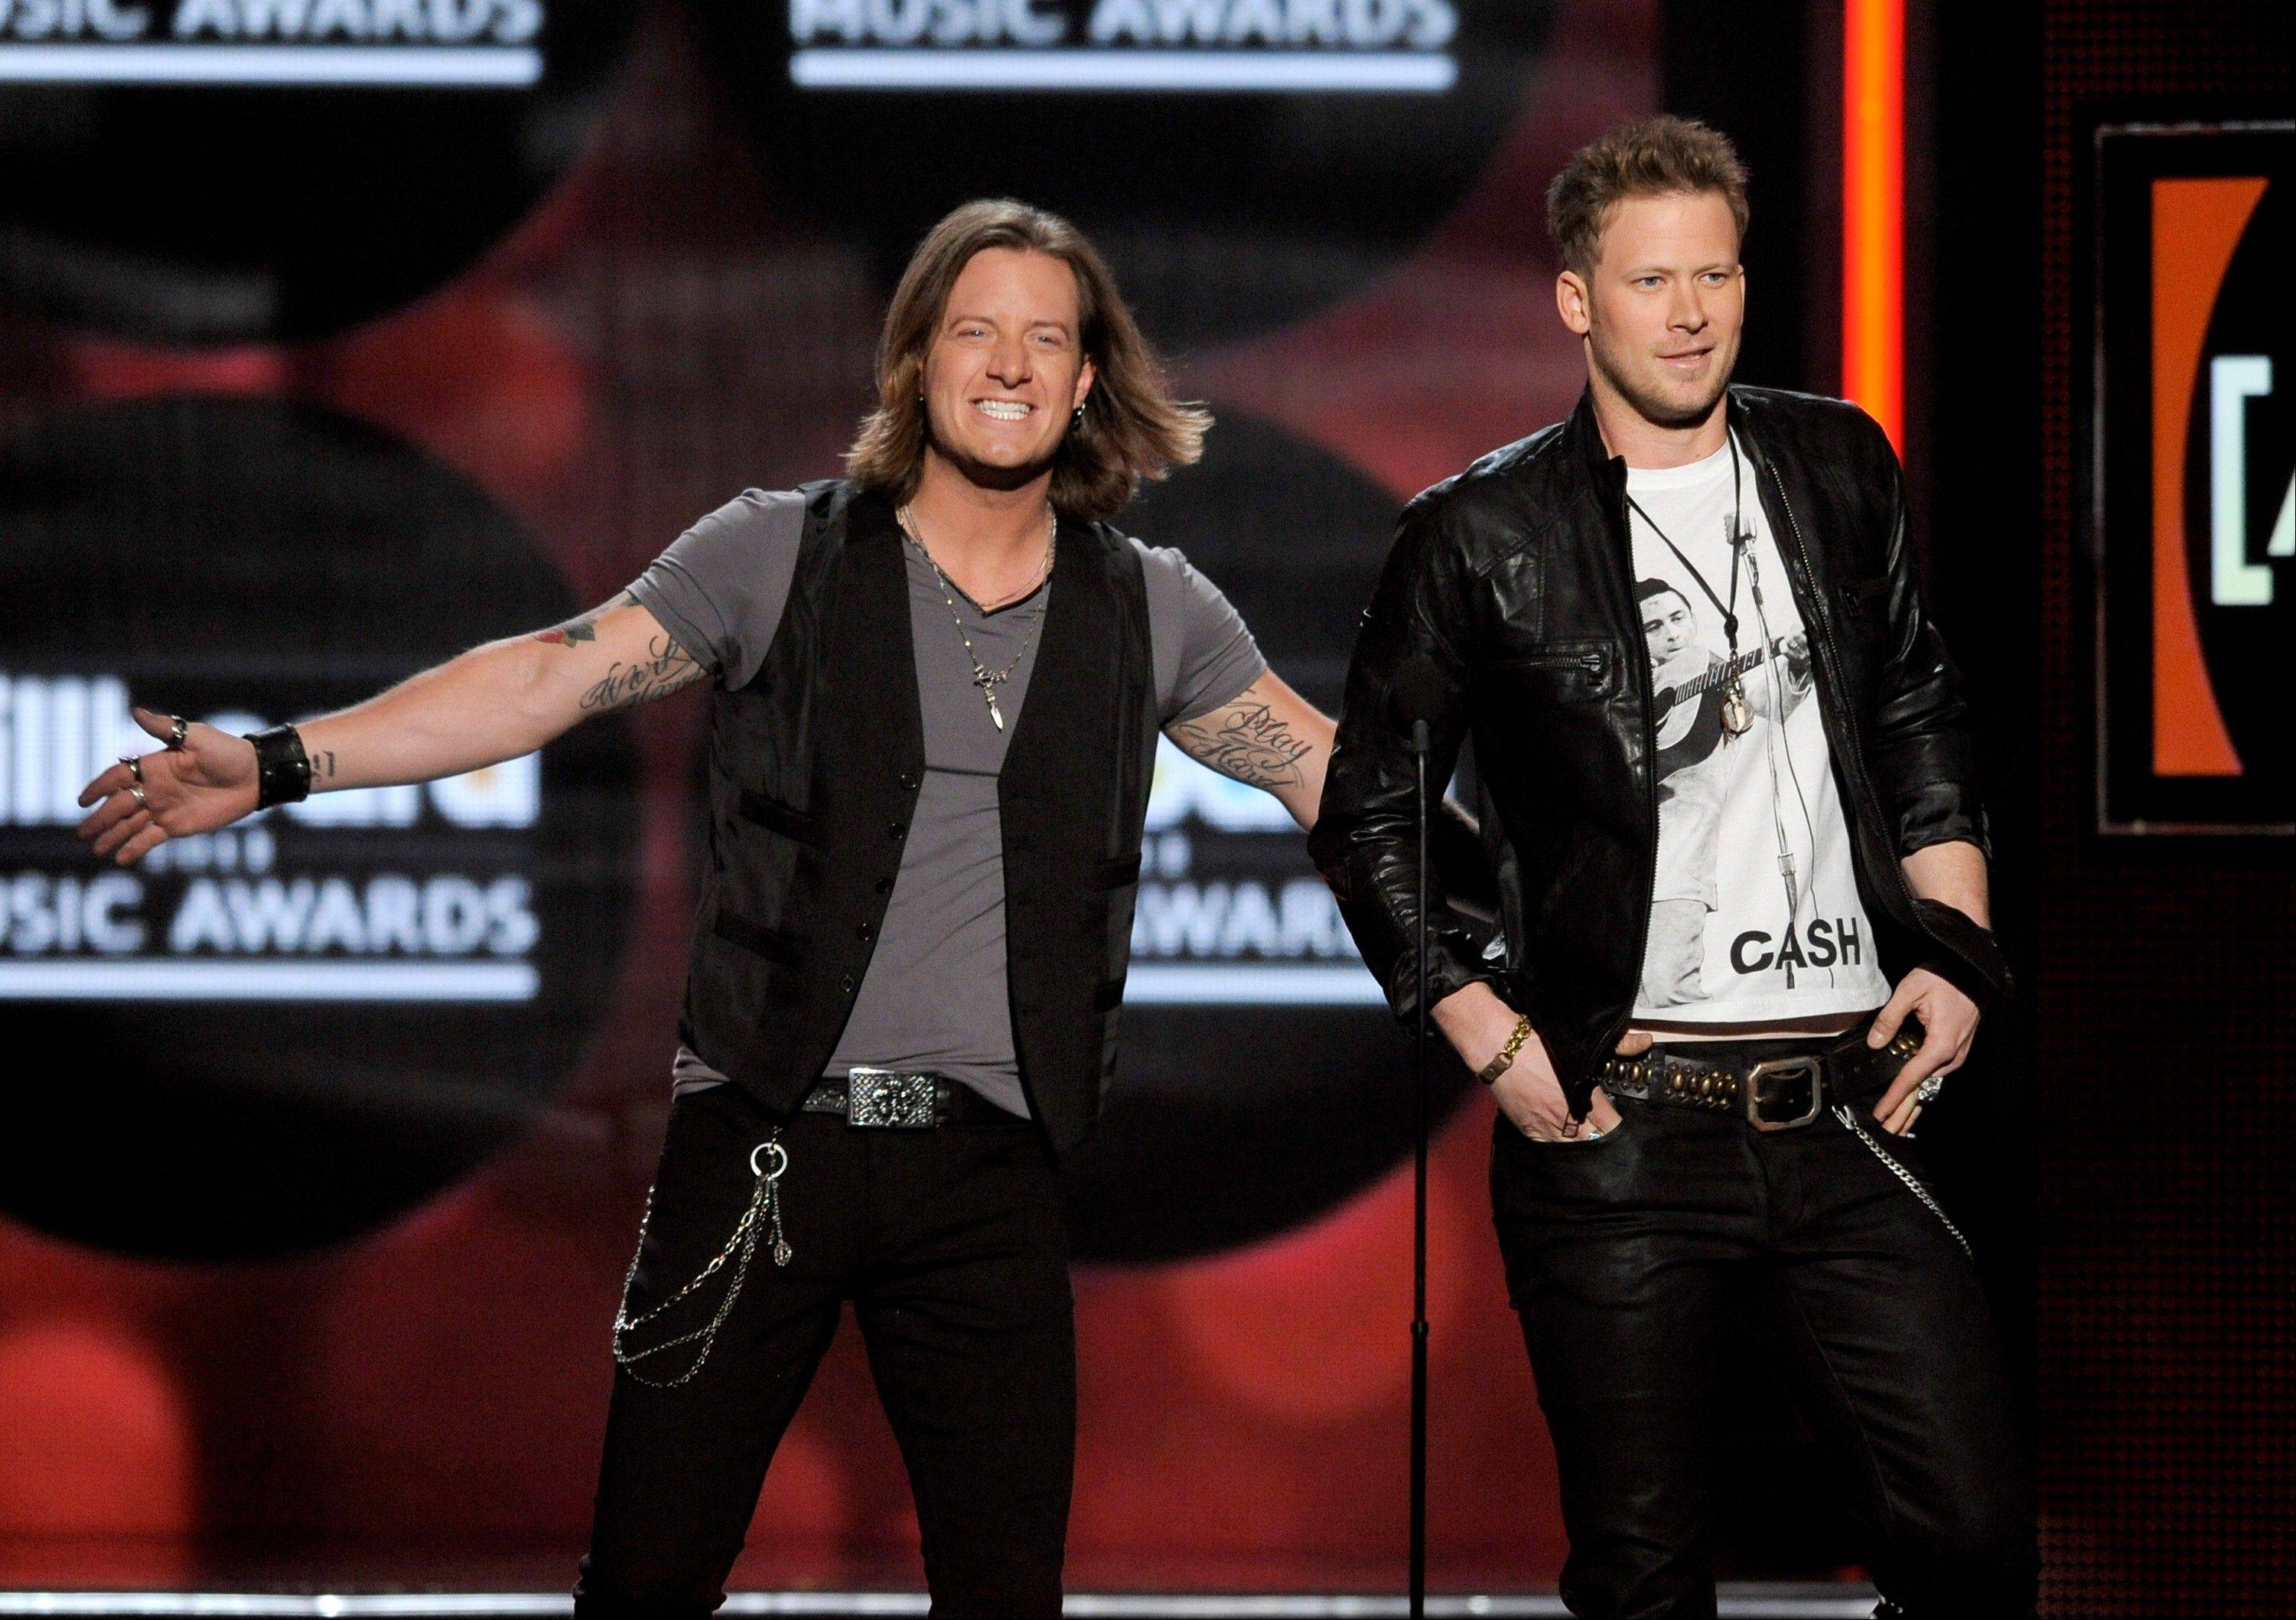 Tyler Hubbard, left, and Brian Kelley, of Florida Georgia Line, appear onstage at the Billboard Music Awards in May. The duo will be performing Halloween night at the Sears Centre Arena in Hoffman Estates.